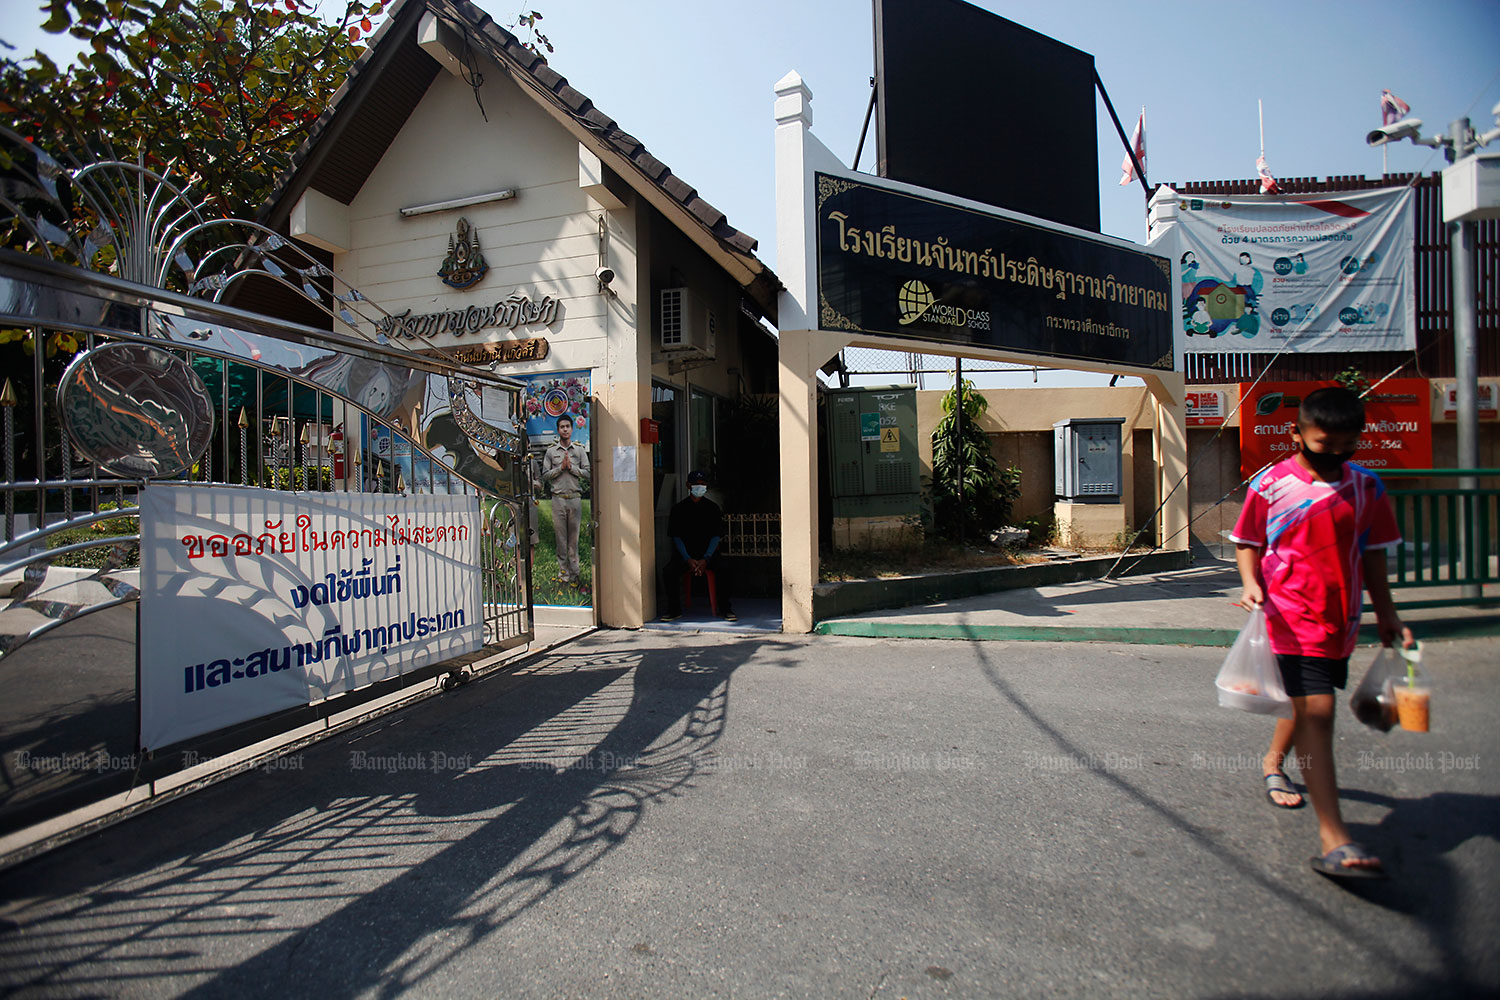 School's out ... again: A boy walks past a sign announcing Chanpradittharam Witthayakhom School in Phasi Charoen district is closed. The school suspended classes after a worker in a nearby factory contracted Covid-19. (Photo by Nutthawat Wicheanbut)